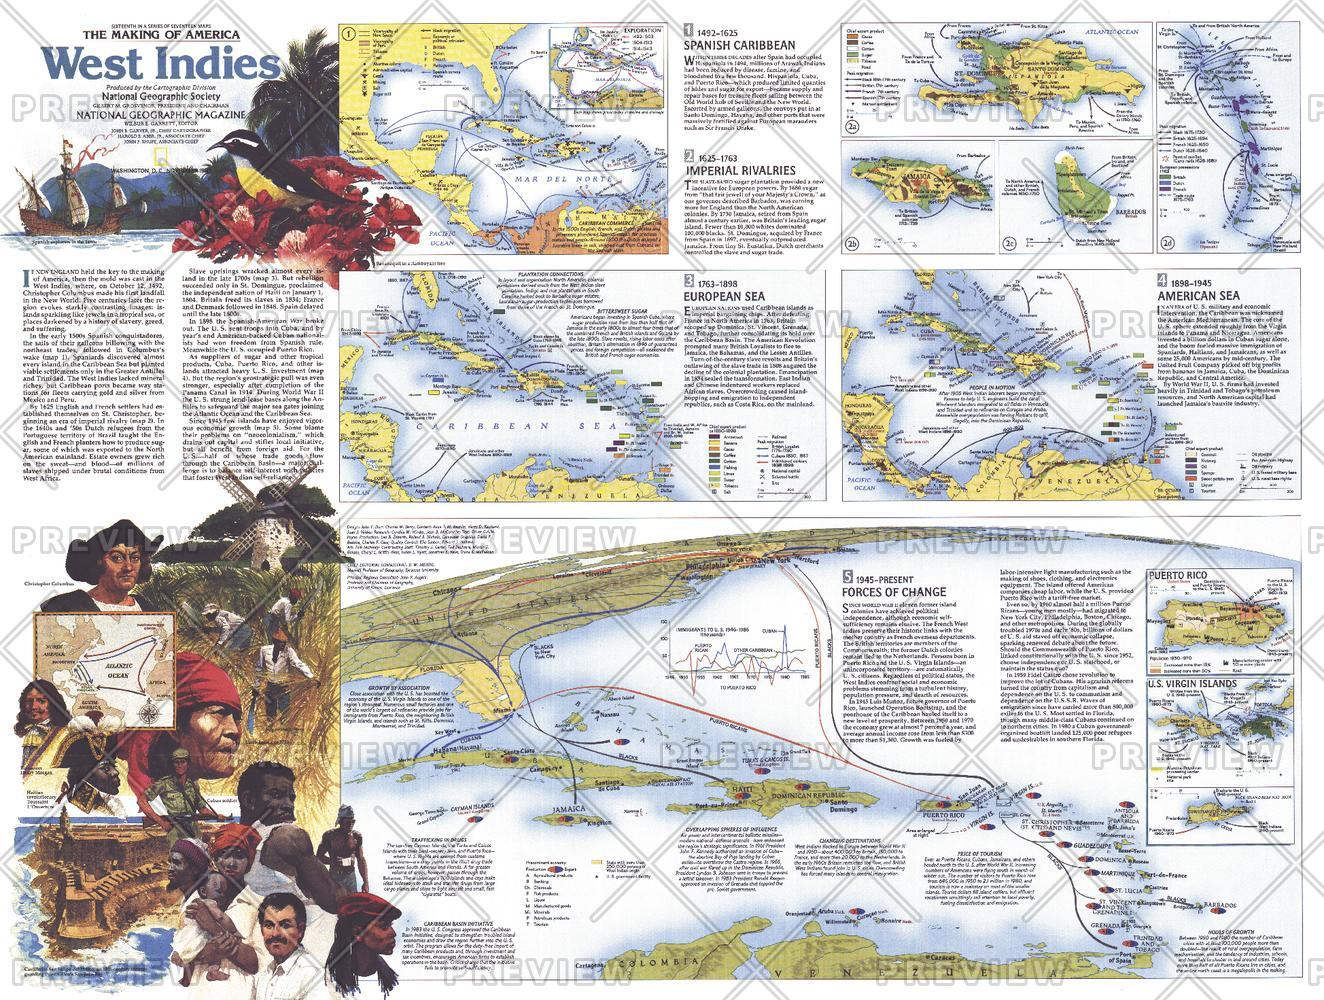 Making of America, West Indies Theme - Published 1987